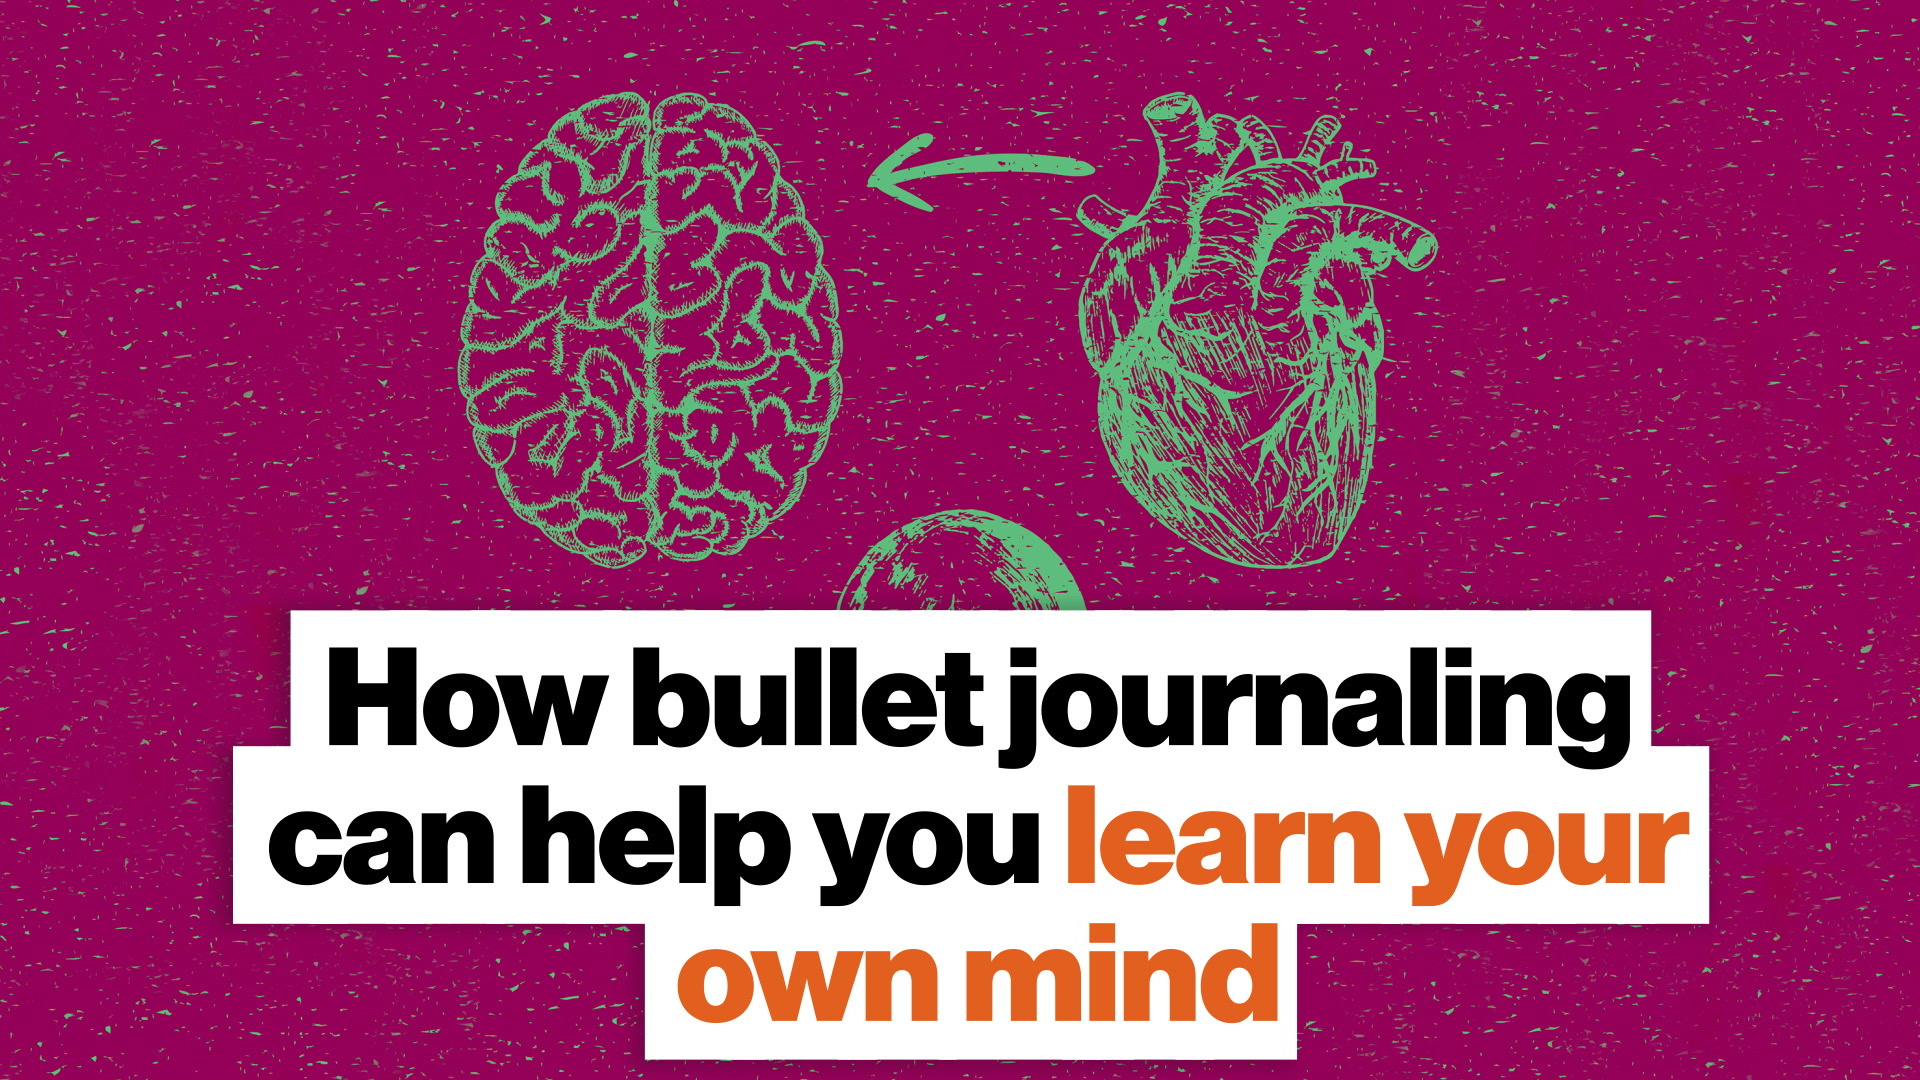 Understand your own mind and goals via bullet journaling